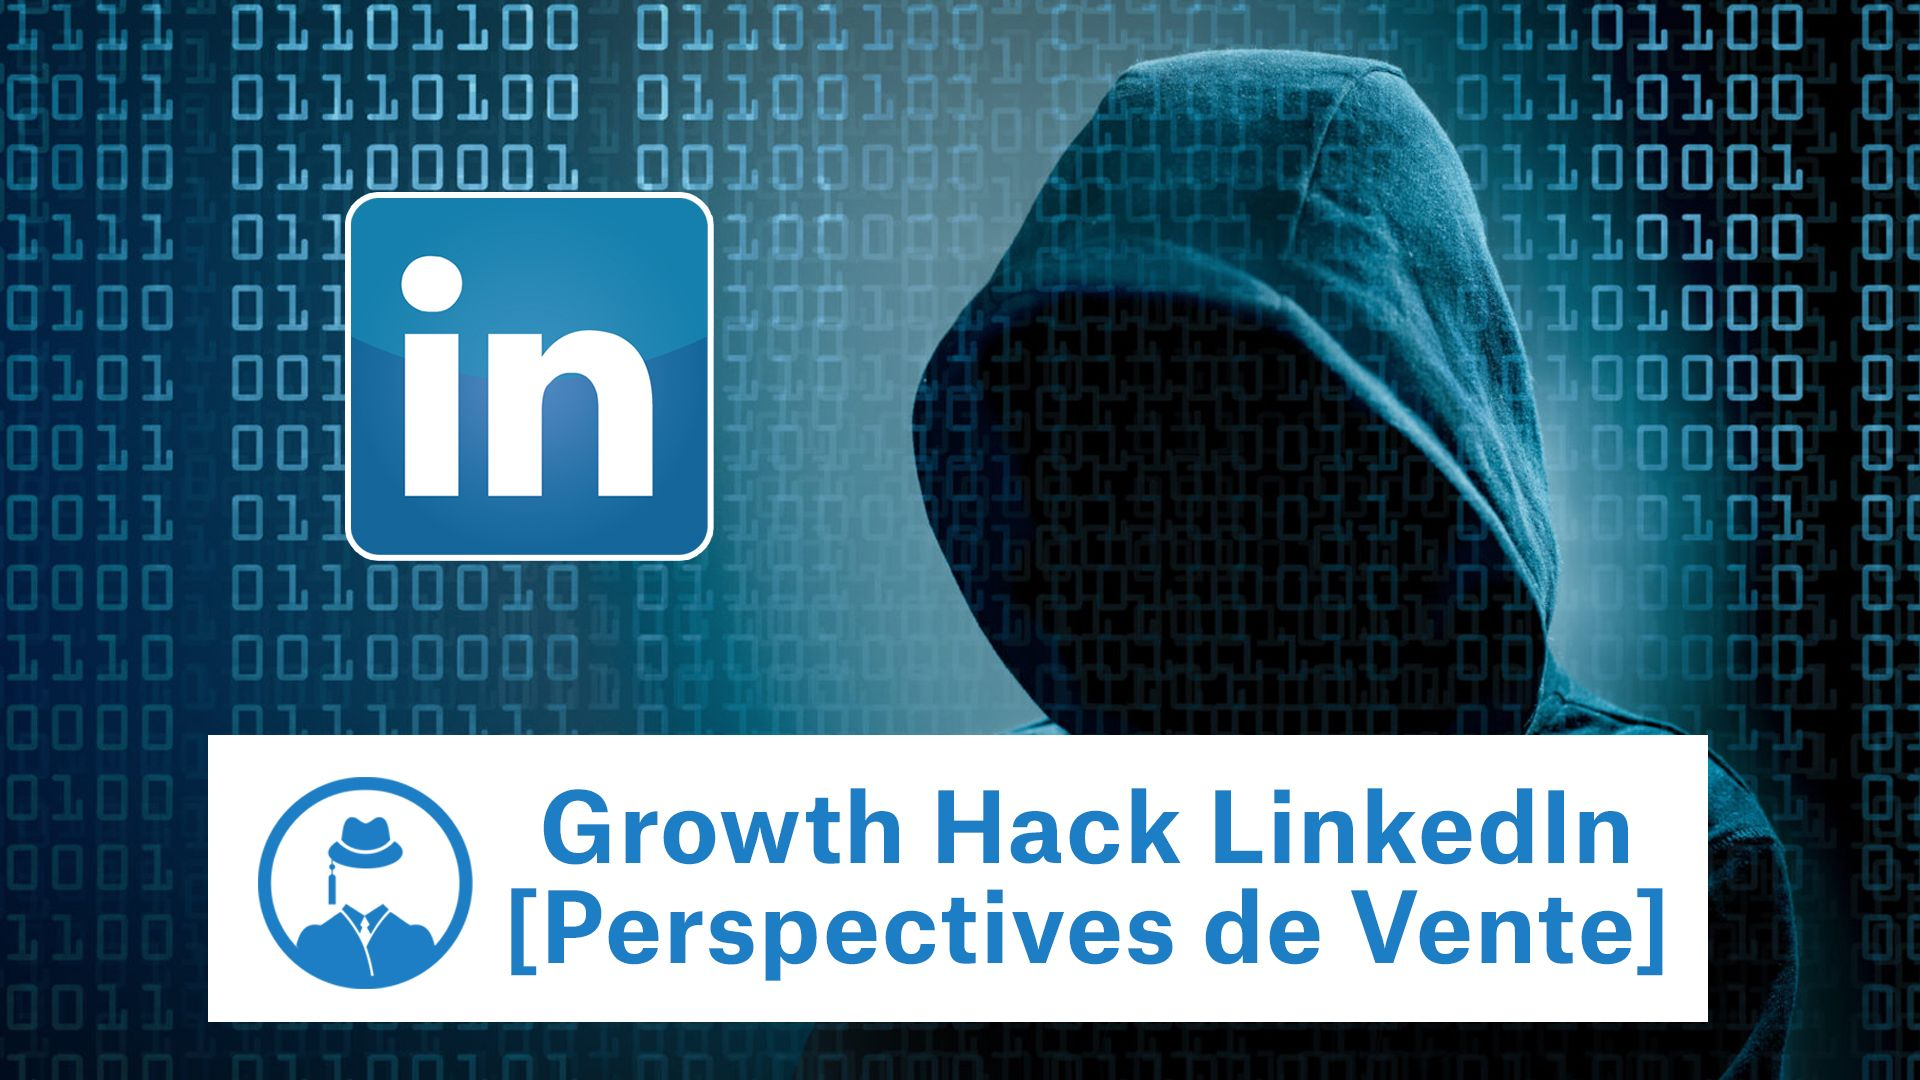 Growth Hack LinkedIn (perspectives de vente) #GrowthHacking #WebMarketing #FormationGrowthHacking #CentreDeFormationFrance #TunnelAARRR #AARRR #SocialMedia #CommunityManagement #SEO #MarketingDigital #SiteWeb